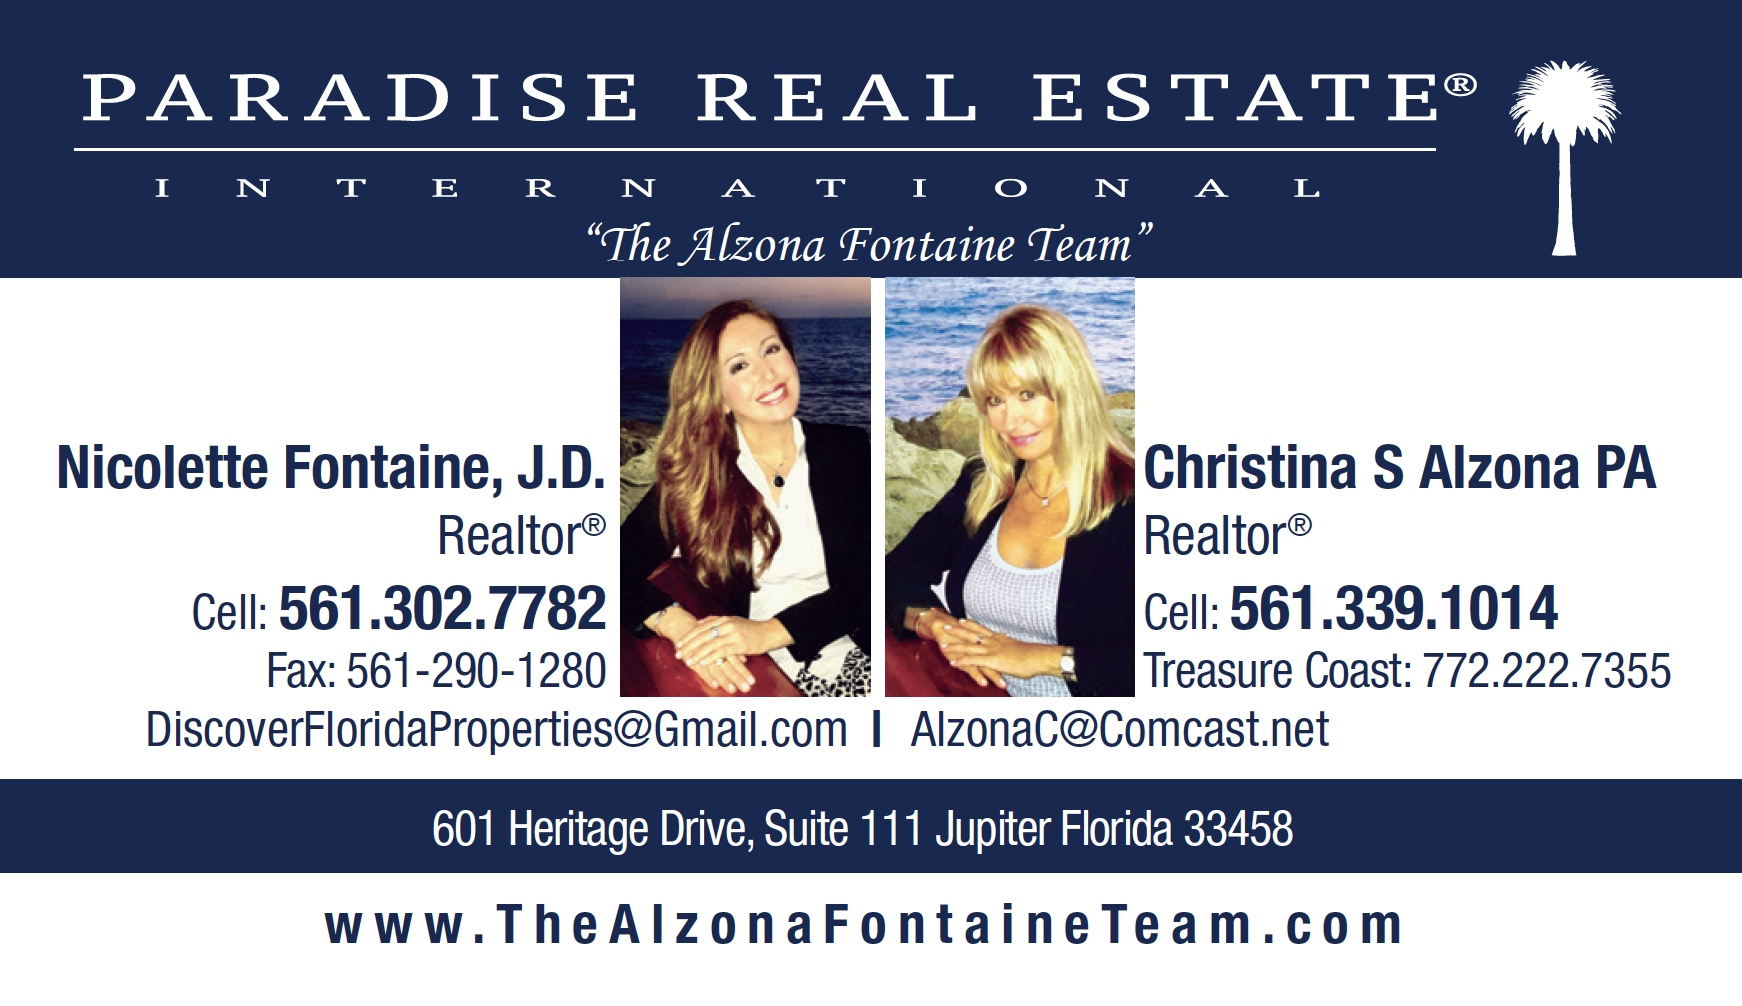 "Nicolette Fontaine & Christina Alzona – Realtors at Paradise Real Estate International - 601 Heritage Drive, Suite 111, Jupiter, FL 33458 - ""The Alzona Fontaine Team"" with Paradise Real Estate International have offices in Jupiter, Palm Beach Gardens and Wellington Florida areas; This professional real estate team will advise and guide you through the Process to Buy your Dream Home, Investment Property or Sell your Property at the best price, anywhere from Jupiter, Juno Beach, Palm Beach Gardens, Tequesta, Hobe Sound to the Treasure Coast (St Lucie & Martin County), as well as Wellington, Delray Beach, Boca Raton, West Palm Beach, Palm Beach Island and North Broward County Florida. Christina Alzona PA and Nicolette Fontaine Specialize in Waterfront, Beachfront, Intracoastal, Golf Course, New Home Construction, Country Club , Equestrian, Farm and Energy Efficient communities. Christina and Nicolette speak Italian and Polish languages and work with international clients; our company Lists Locally and Markets Listings Globally!   – Christina Alzona PA is of Polish descent, and she comes with 21 years real estate experience having worked with buyers, sellers and investors in residential and commercial real estate. Christina resides in the Palm Beaches for 25 years, and prior, lived in Warsaw Poland, Italy and New York. She had her own fashion manufacturing business in the Garment Center on 7th Avenue in Manhattan, as well as her own retail stores. Her daughter, Nicolette Fontaine, J.D. is an experienced Tech Savvy Realtor who brings 14 Years Real Estate experience from the Florida and Tennessee markets to the table. Prior to Real Estate, Nicolette earned her Juris Doctor Law Degree and worked in Entertainment Law, Public Relations and Music Industry. Thanks to her diverse background in business affairs, law, media relations and marketing, as well as her exceptional negotiation skills and experience as a Realtor and a Property Investor herself, Nicolette has been able to propel her Real Estate business over the last 14 years.  –  ""The Alzona Fontaine Team"" oferuje kompleksową obsługę klienta w obrocie nieruchomościami (kupno i sprzedaż) w rejonie Jupiter, Palm Beach Gardens and Wellington, na południowo-wschodnim wybrzeżu Florydy. Oprócz angielskiego, Christina i Nicolette mówią biegle po polsku i włosku. Christina pochodzi z Warszawy i ma ponad 21-letnie doświadczenie w pośrednictwie obrotu nieruchomościami. Jej córka, Nicolette ma ponad 14-letnie doświadczenie na rynku nieruchomości i jest doktorem prawa. Christina i Nicolette specjalizują się między innymi w nieruchomościach luksusowych nad wodą, przy plaży i na polach golfowych. – Nicolette: (561) 302-7782 Christina: (561) 339-1014  – www.TheAlzonaFontaineTeam.com – Facebook.com/DiscoverFloridaProperties"